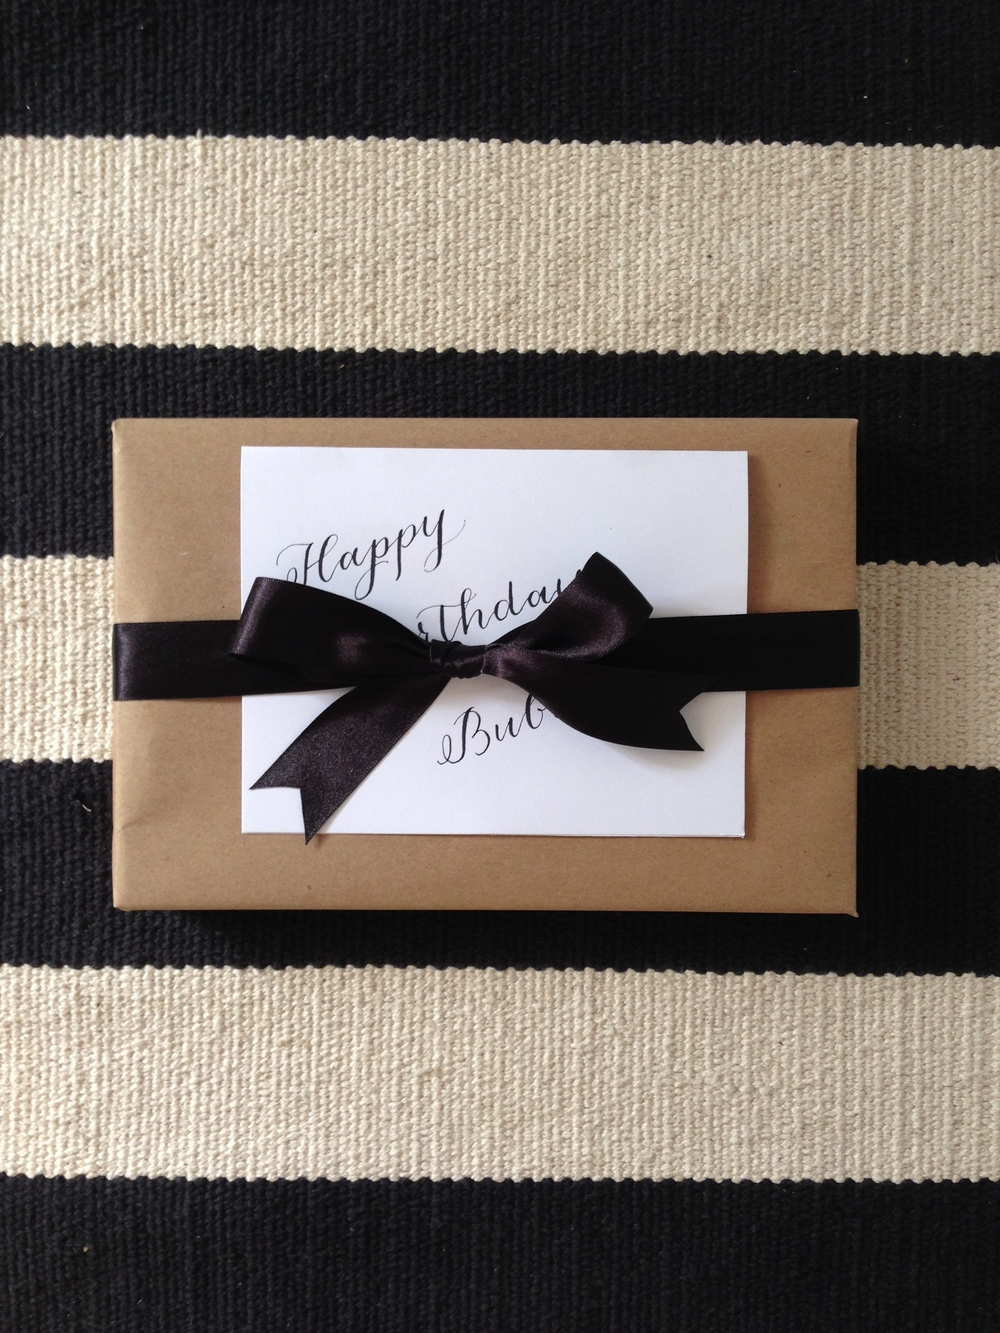 Bubba Gift | Natalie Grace Calligraphy Co.